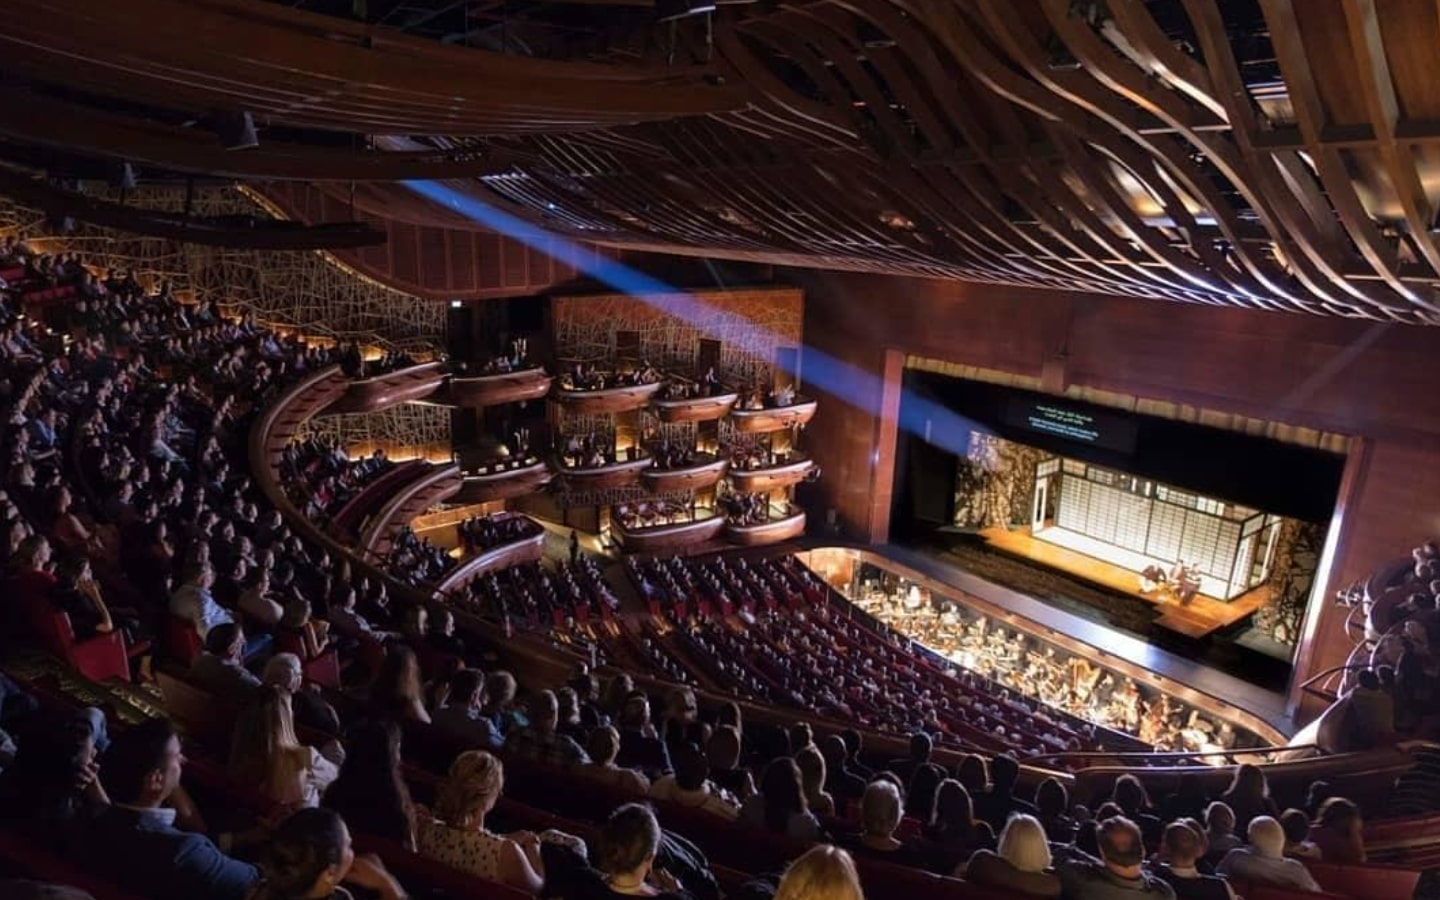 View of the Dubai Opera auditorium, which will be hosting Dubai events in August 2019